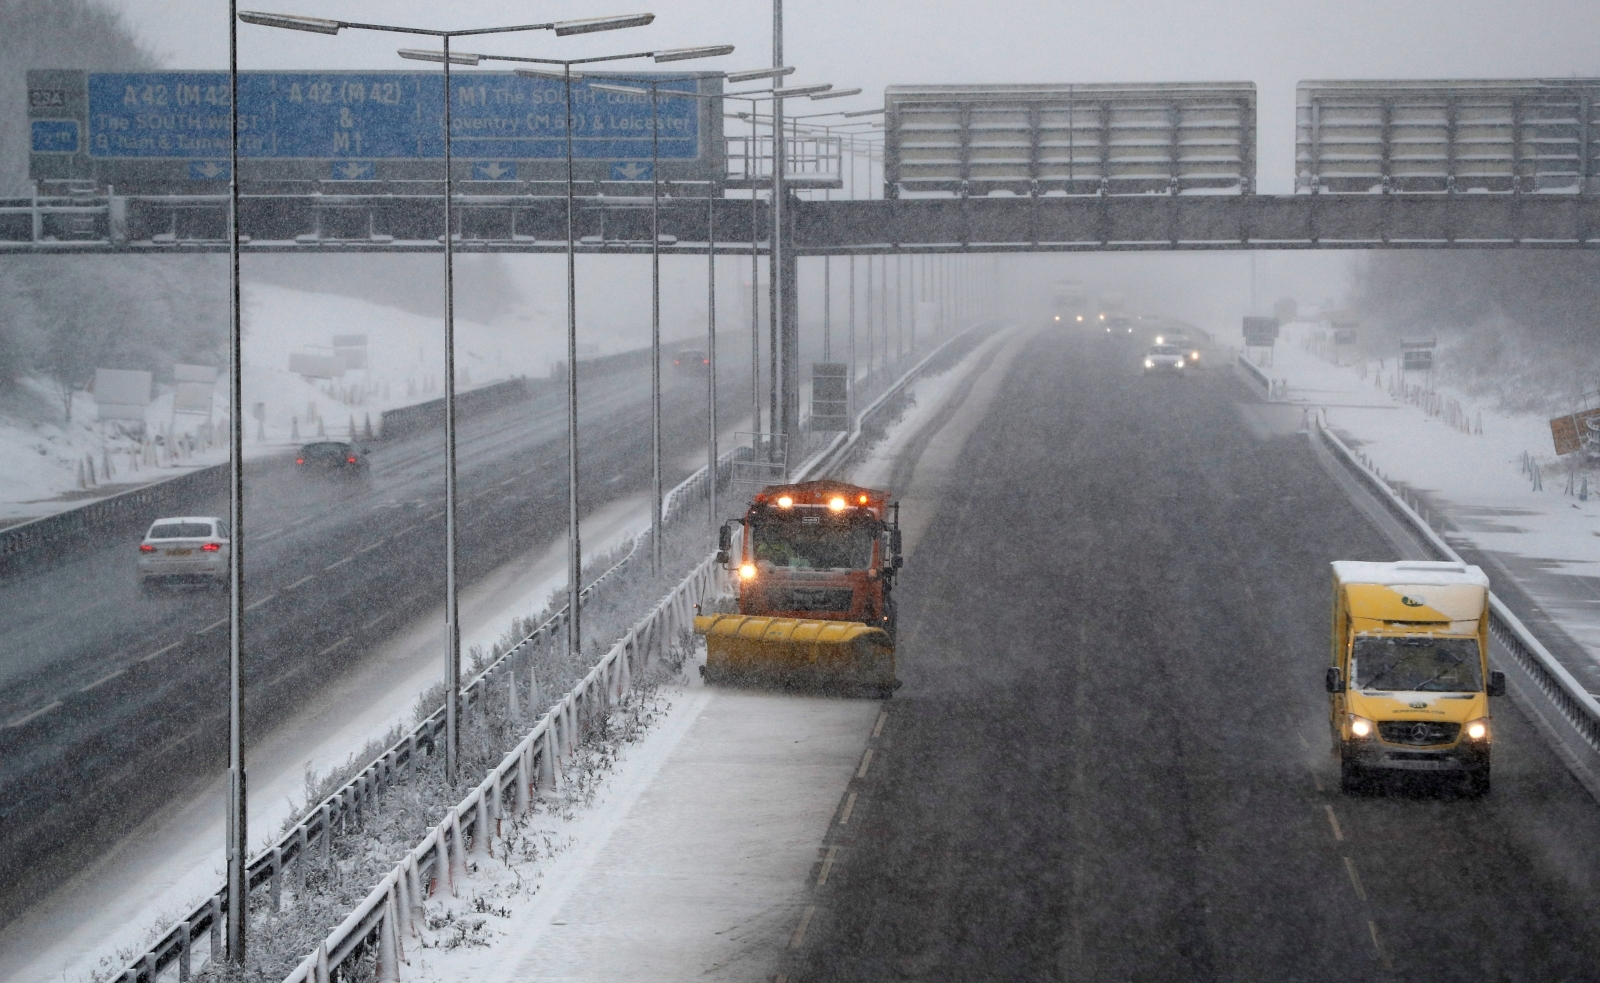 Scotland's weather: Flights cancelled as snow impacts United Kingdom airports